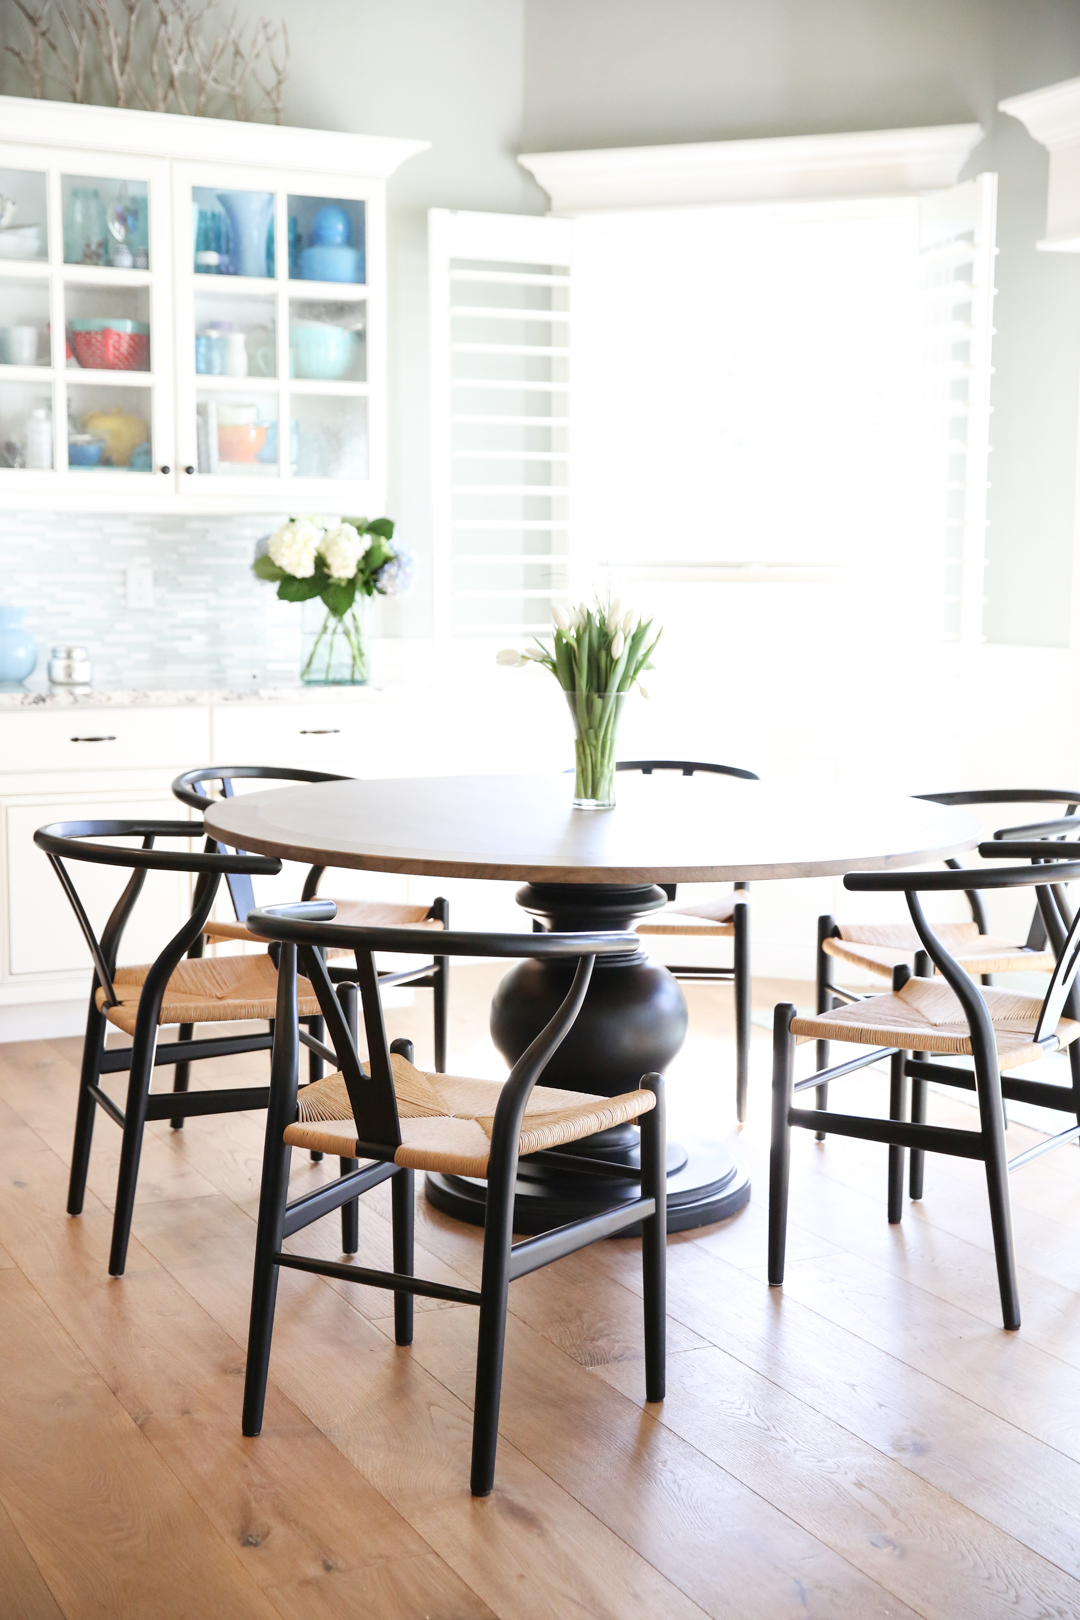 How To Choose A Round Kitchen Table And Chairs Saramichellewells Com